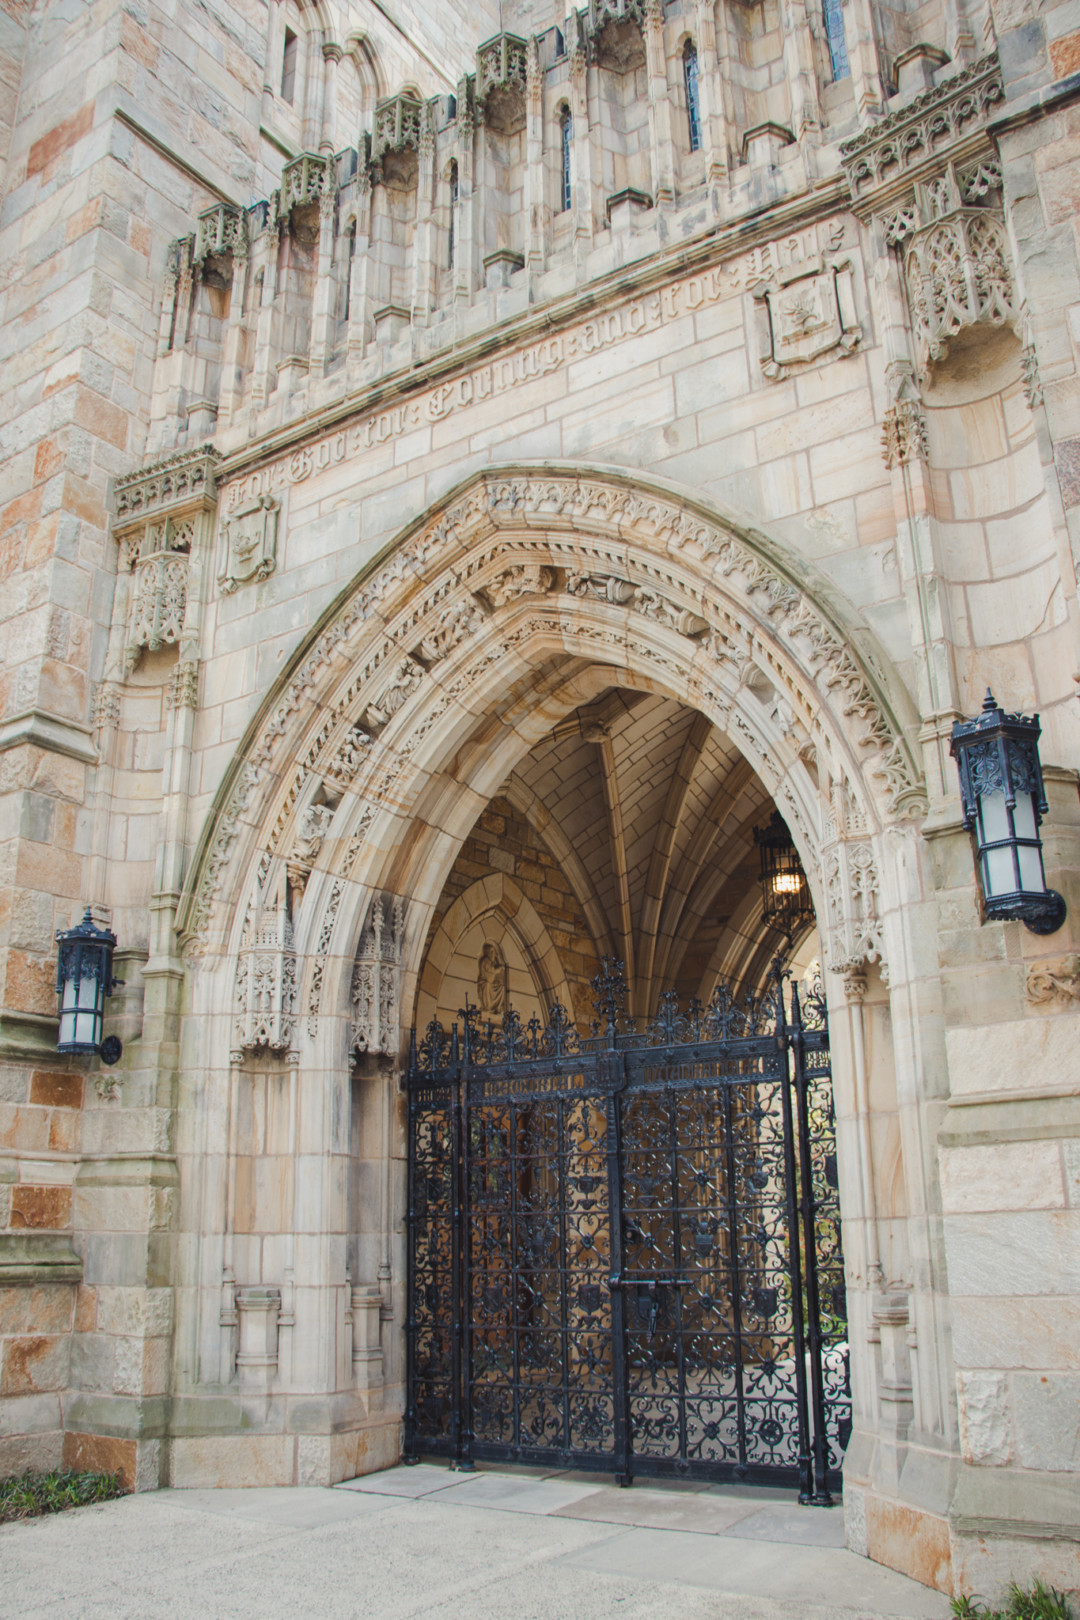 Entrance into Branford Court at Yale University, New Haven, CT